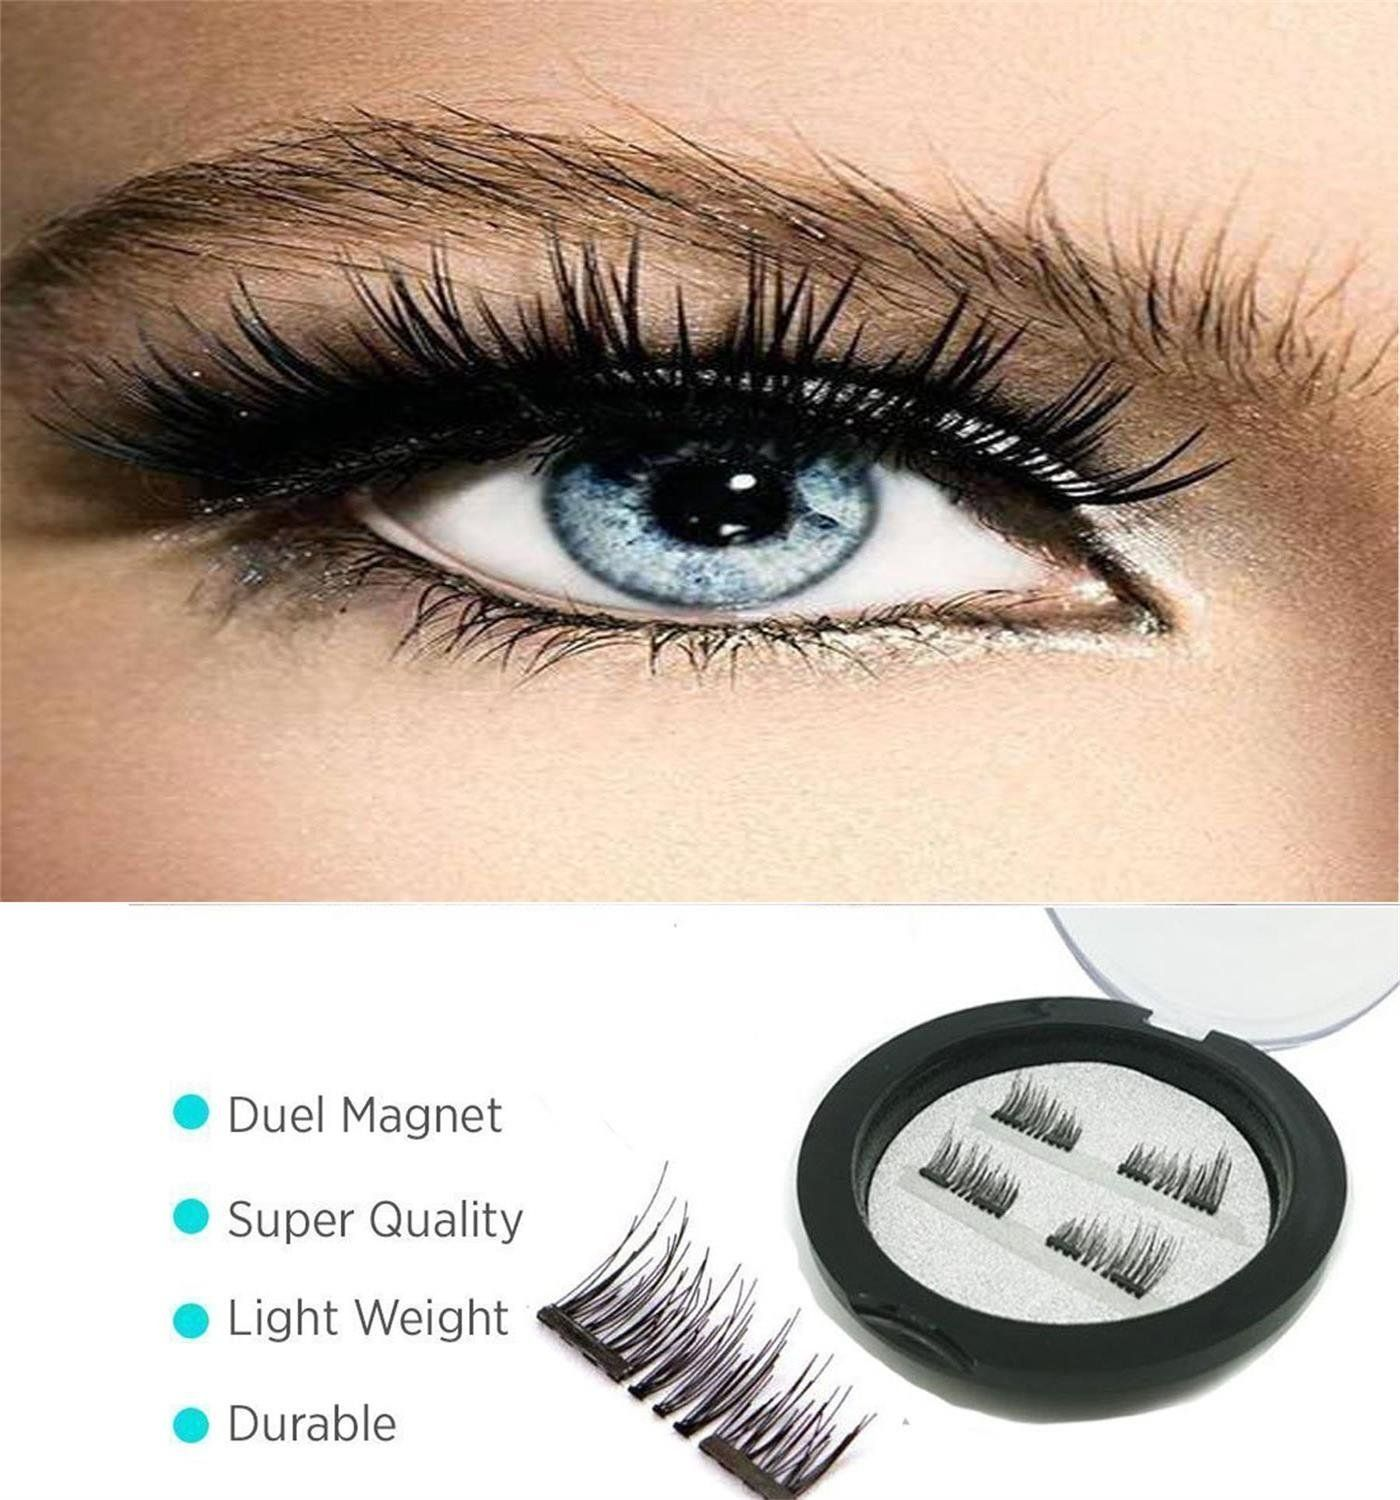 ece638ca757 Dual Magnetic False Eyelashes[No Glue], Cover the entire eyelids ,Cruelty  Free